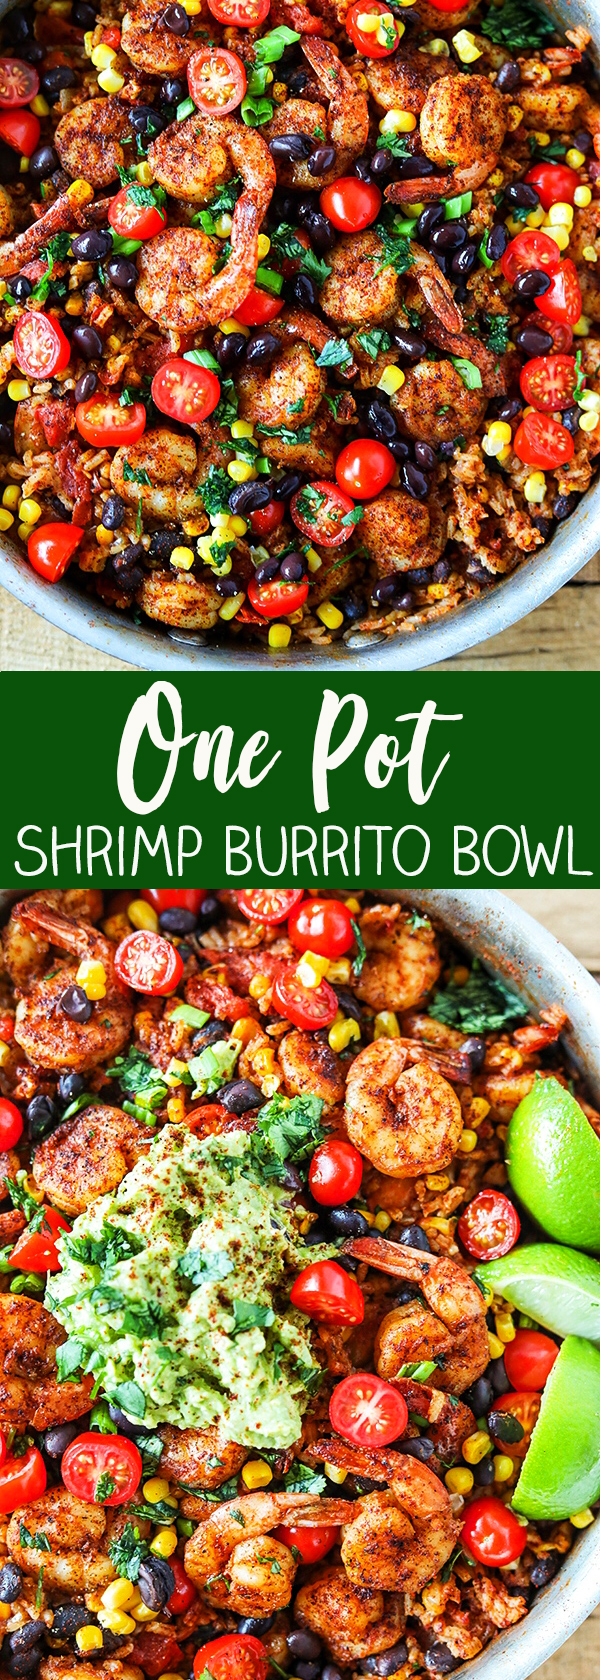 One Pot Shrimp Burrito Bowl - gluten-free and dairy-free. Easy family friendly one-pot dinner idea! Seasoned shrimp with a squeeze of fresh lime juice, tender black beans, sweet yellow corn, fire roasted tomatoes and homemade mexican rice, all in one pot!!